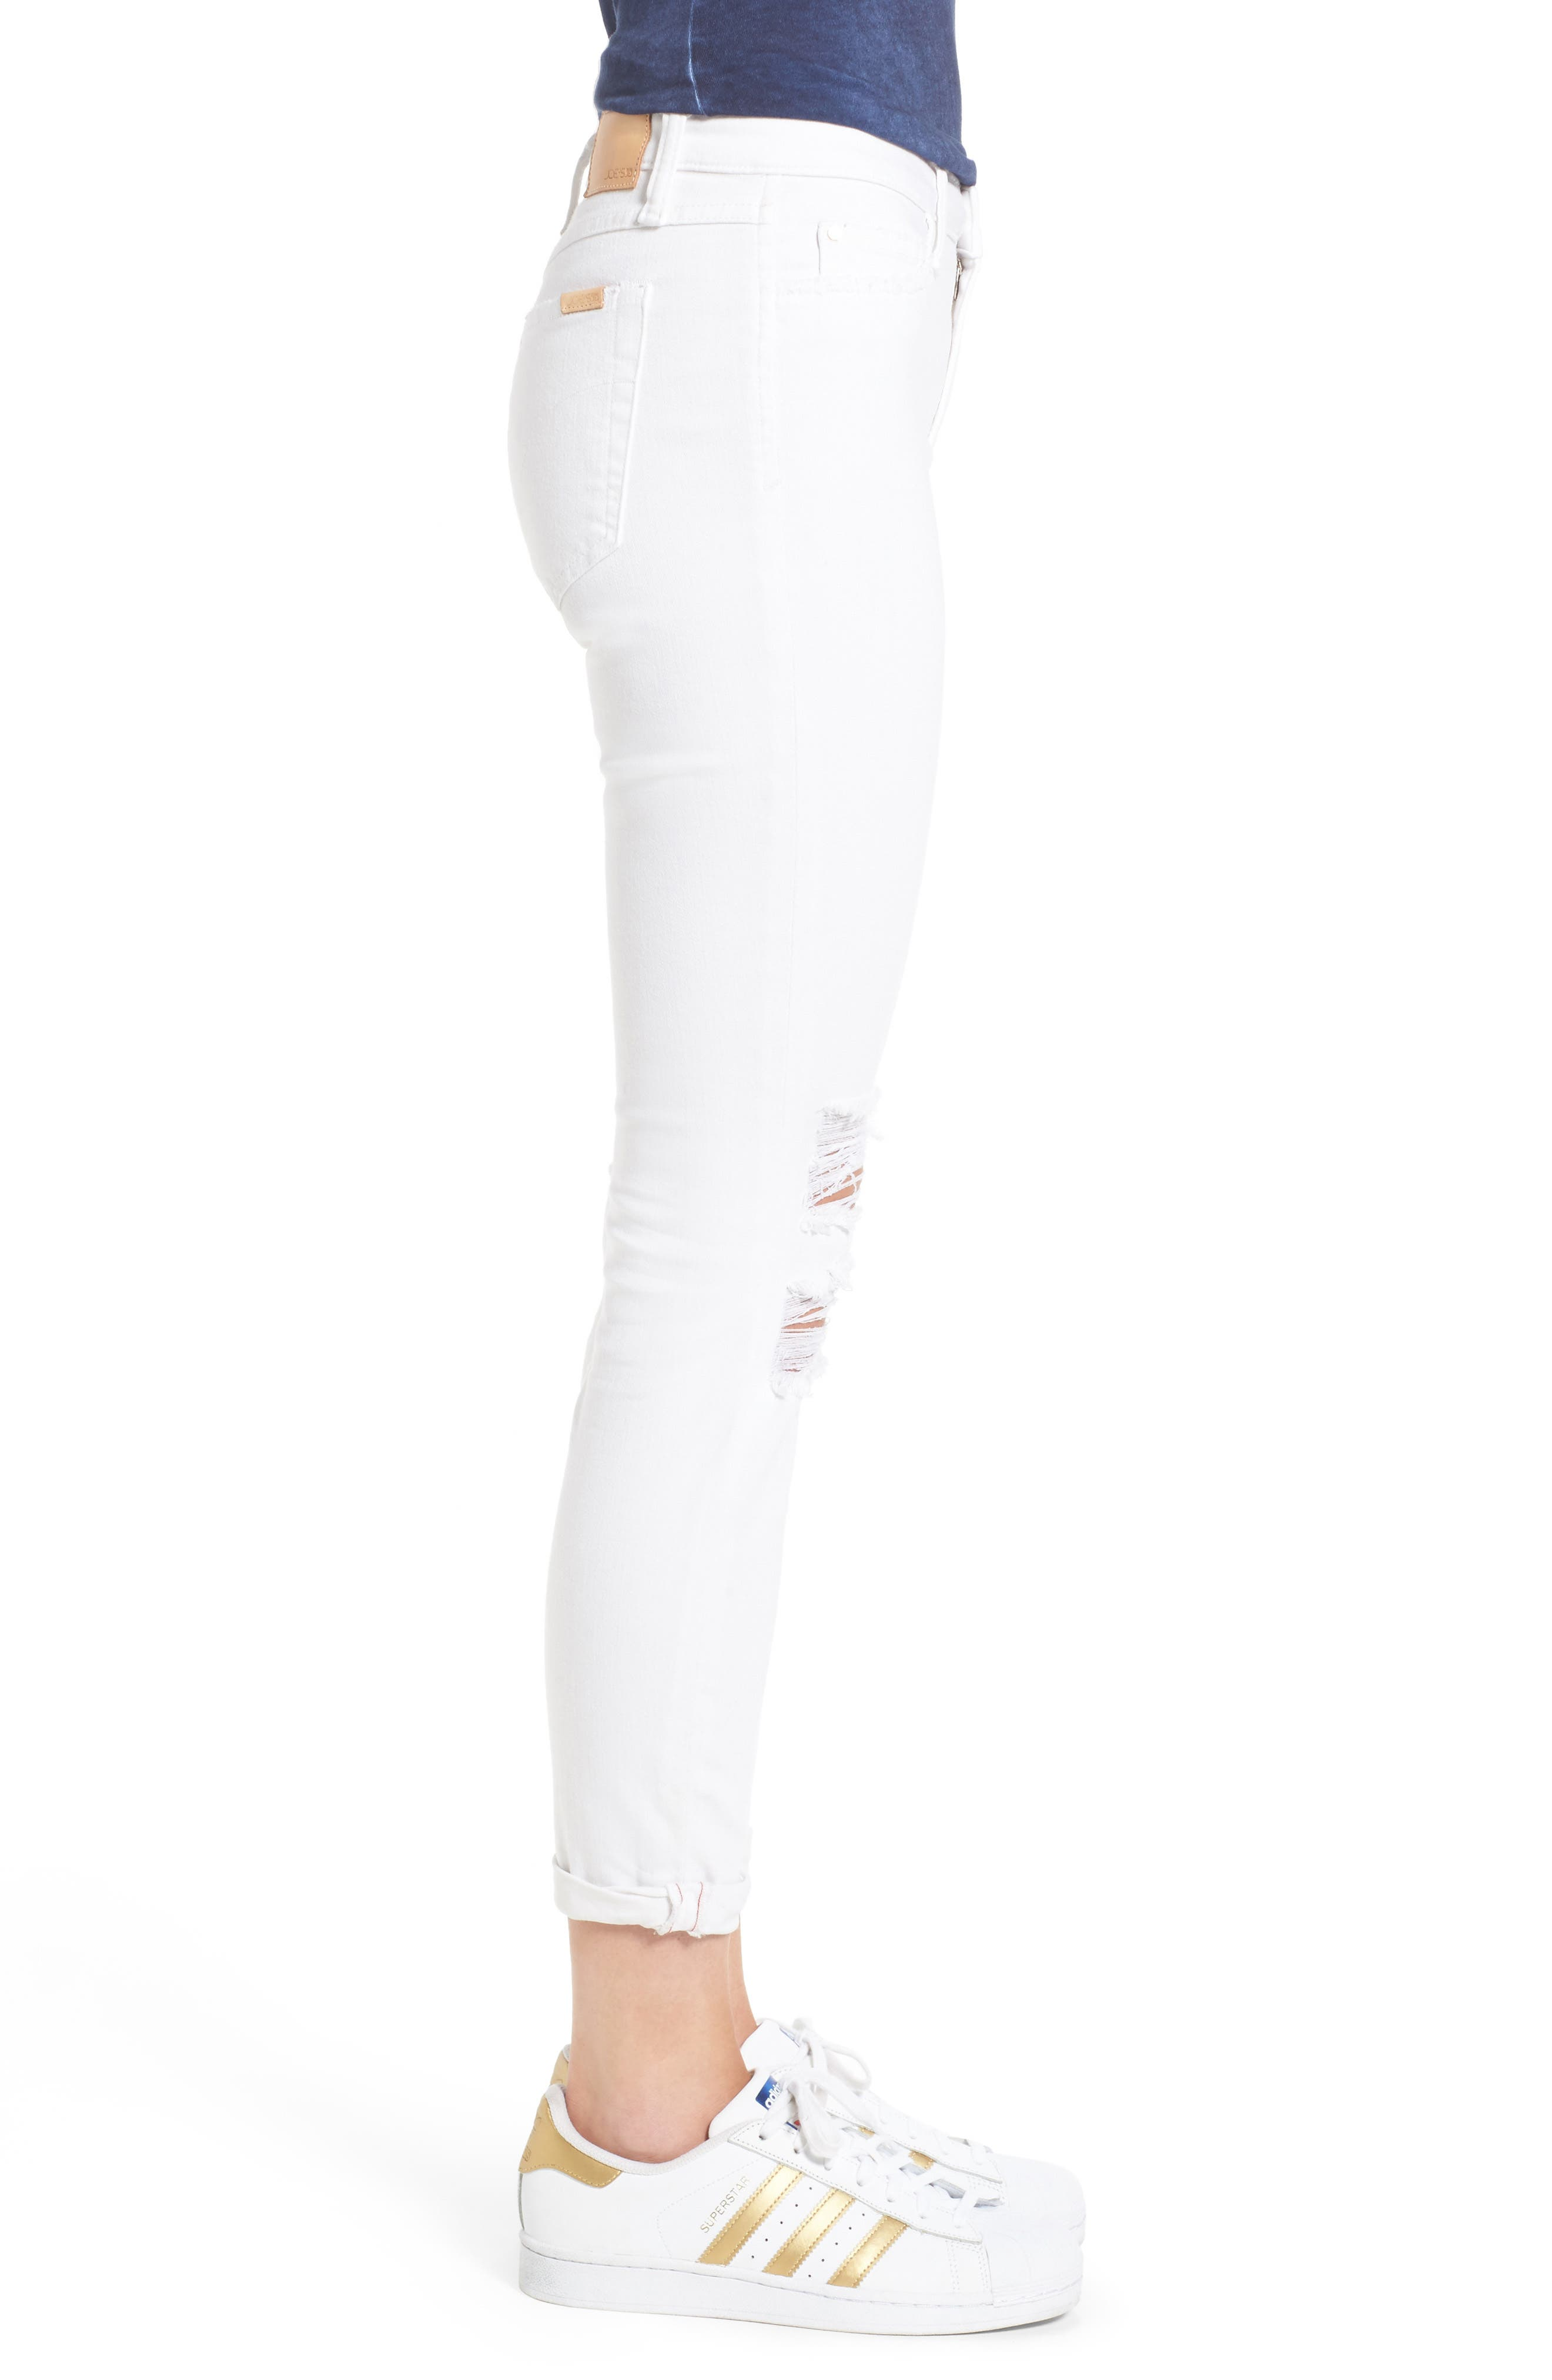 Andie Crop Skinny Jeans,                             Alternate thumbnail 3, color,                             Scottie